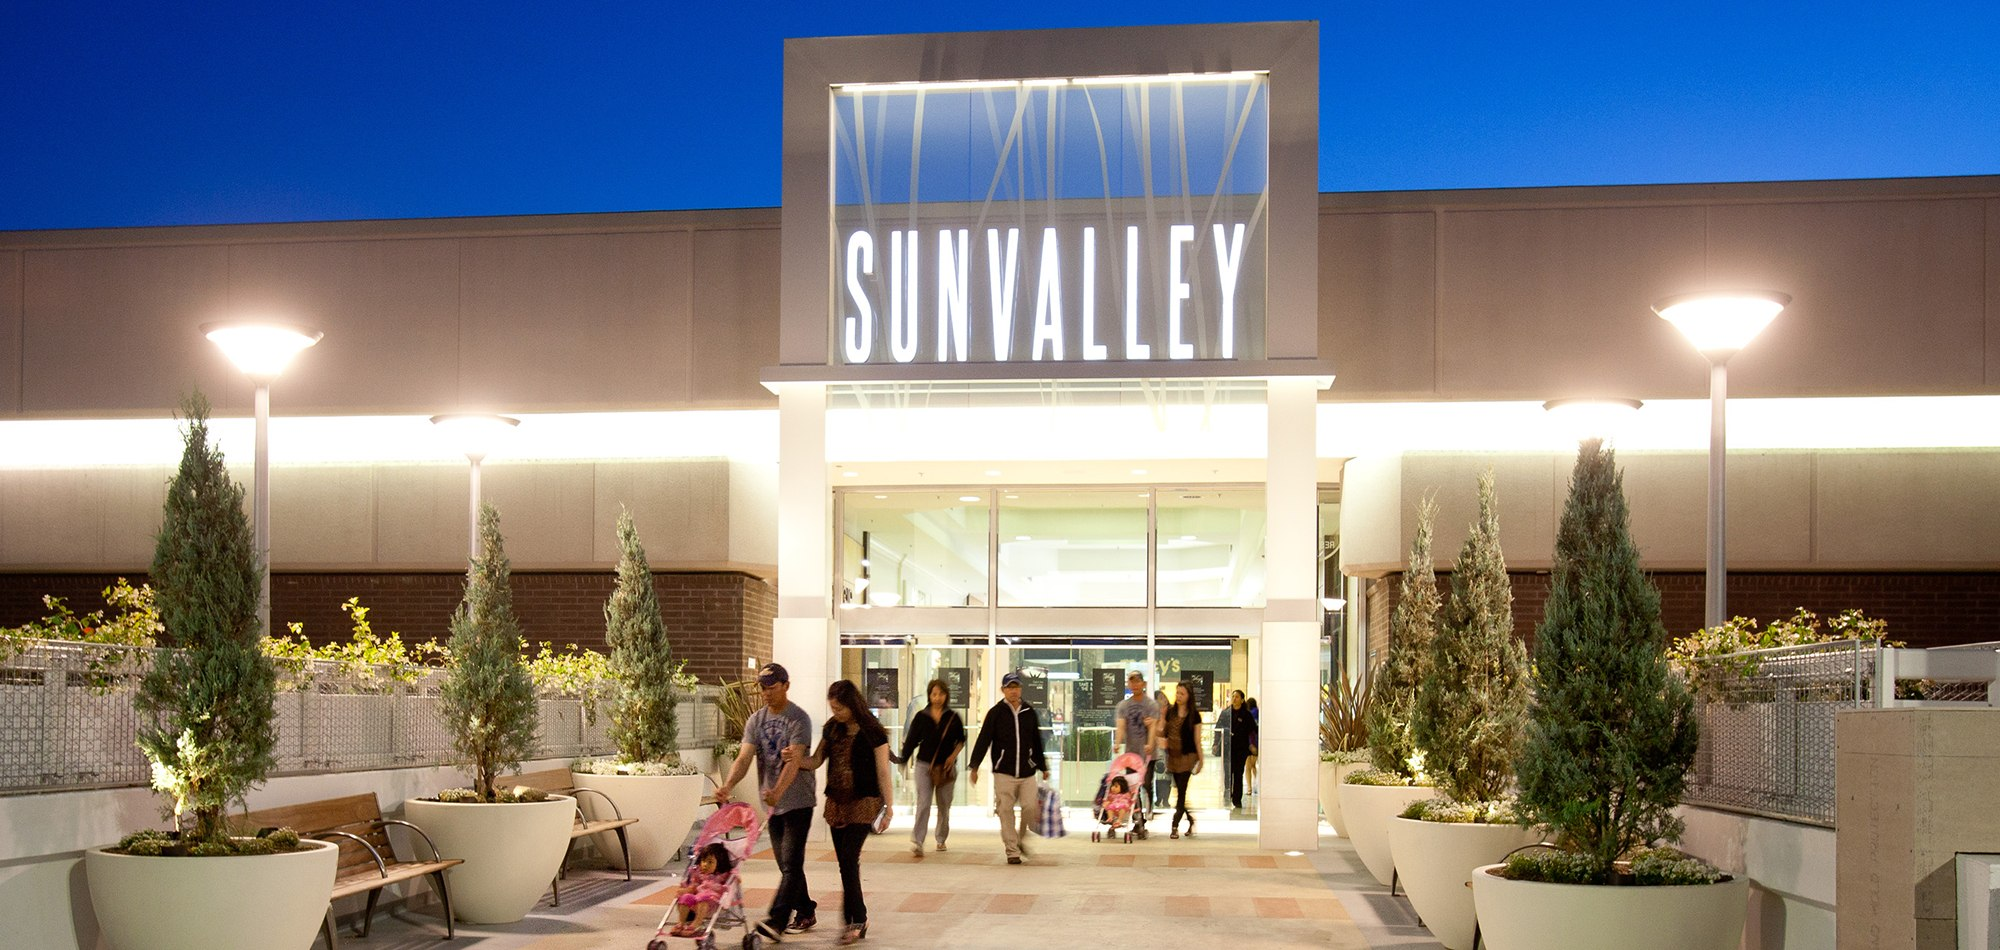 Sunvalley is the largest regional shopping center in the heart of affluent Contra Costa County, featuring a collection of more than retail shops, services and restaurants.6/10(10).